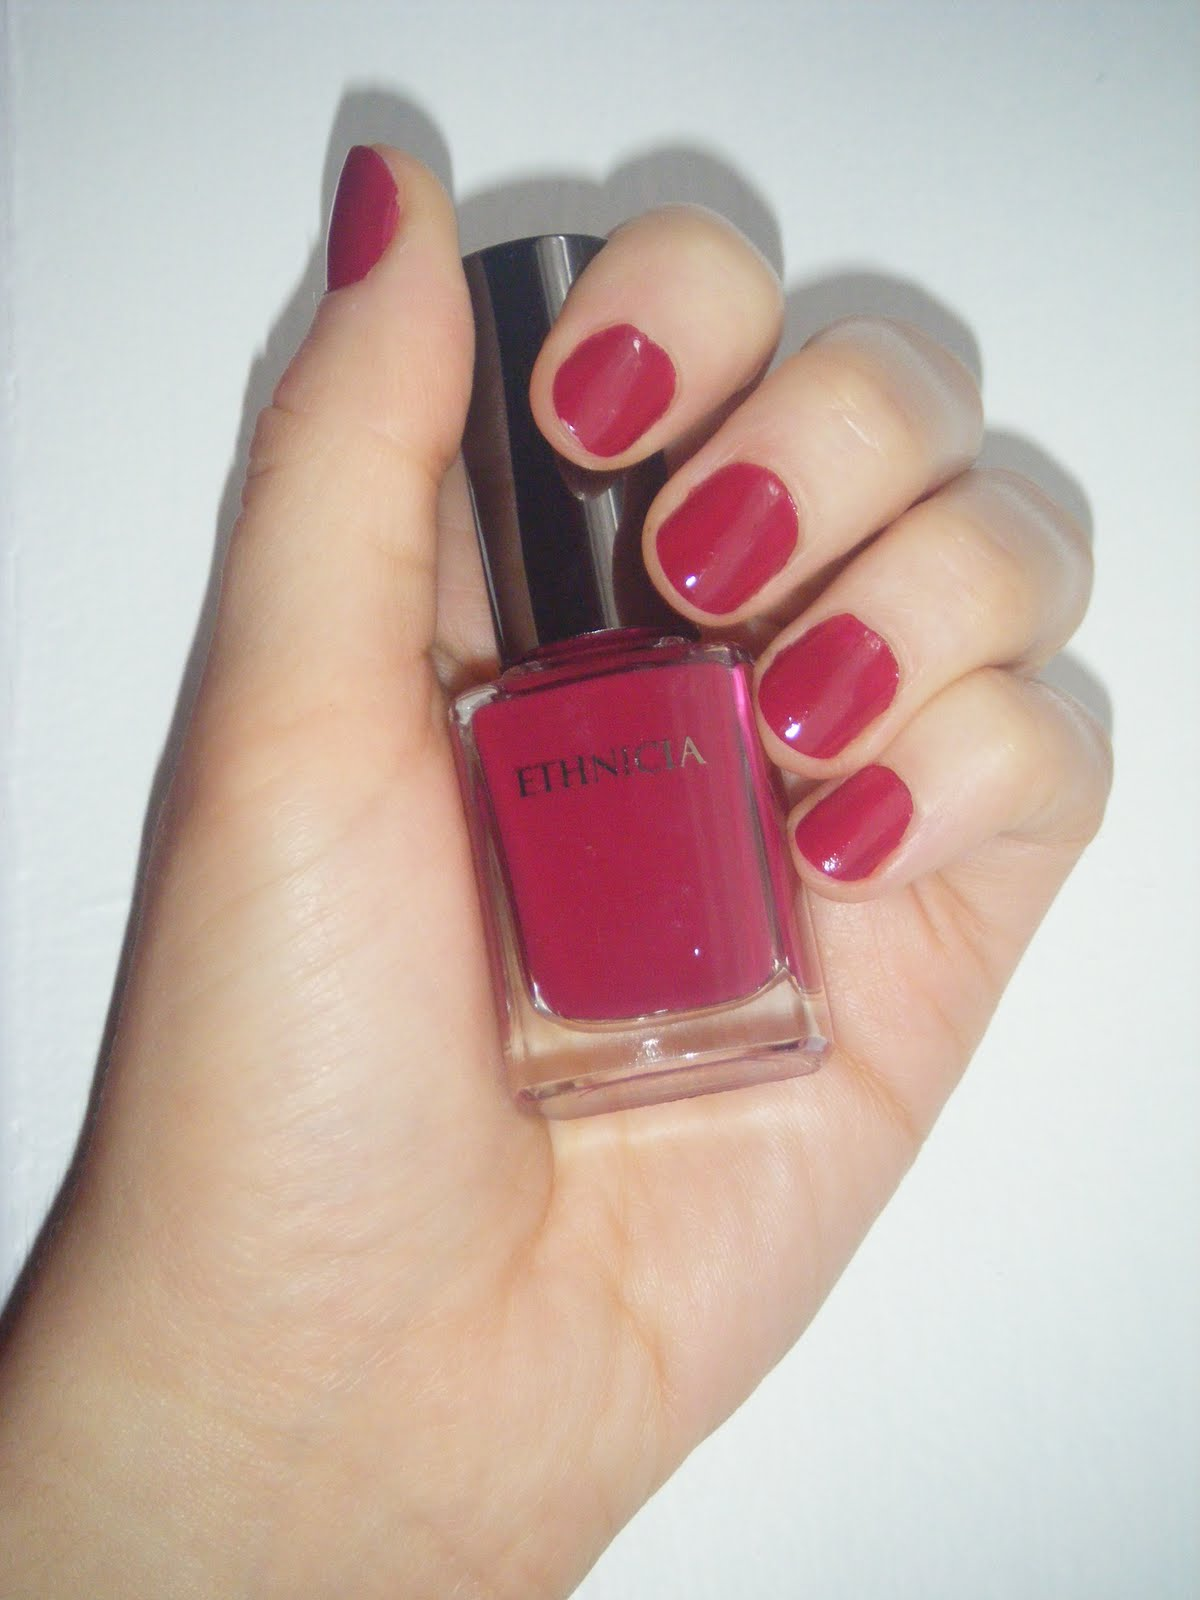 Super Journal d'une beauty paresseuse: Cassis Framboise d'Ethnicia : un  QF55